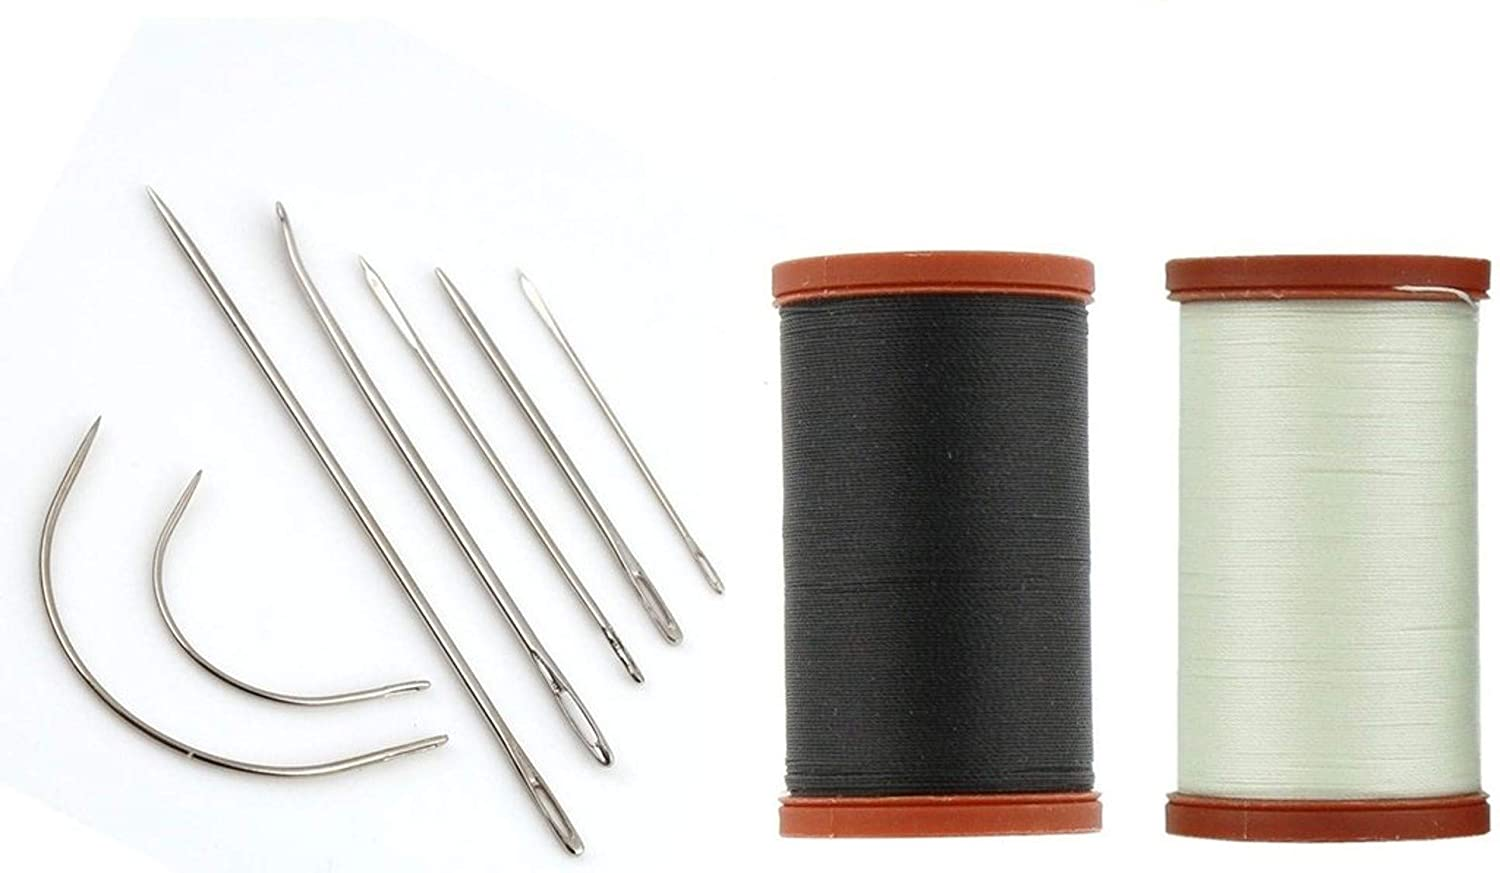 Sale! Upholstery Repair Kit! Coats & Clark Extra Strong Upholstery Thread 1 Naturel Spool, 1 Black Spool (150-Yard) Includes a Set of Heavy Duty Assorted Hand Needles, 7-count kedudes JO-N-05